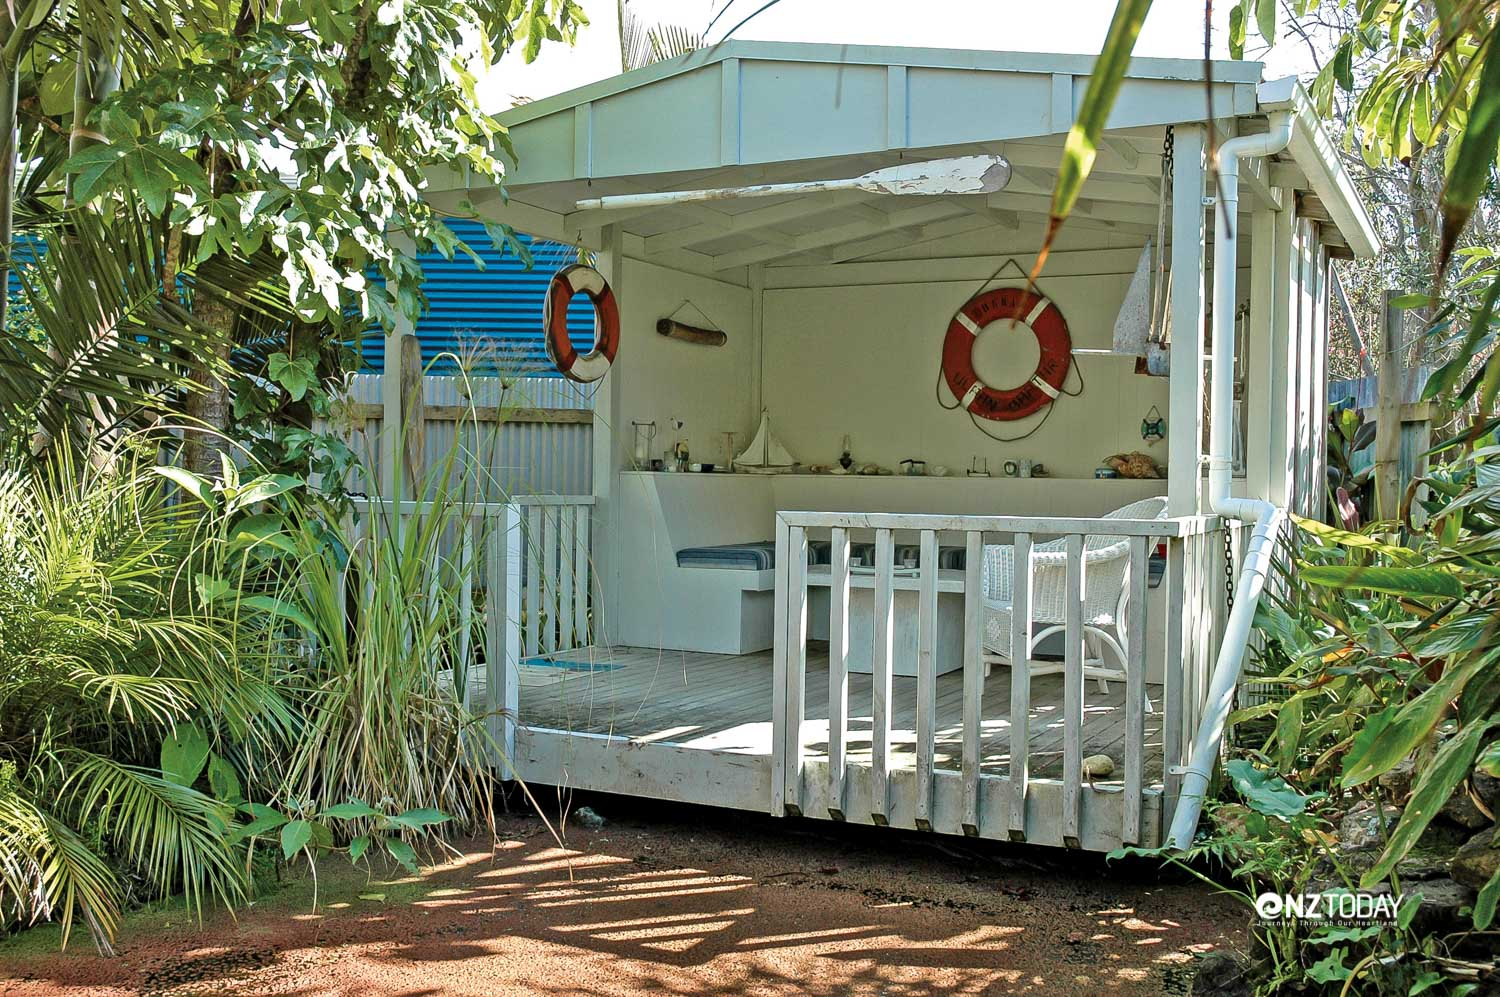 Many gardens have quirky outbuildings, or summer-houses with suitably nautical themes